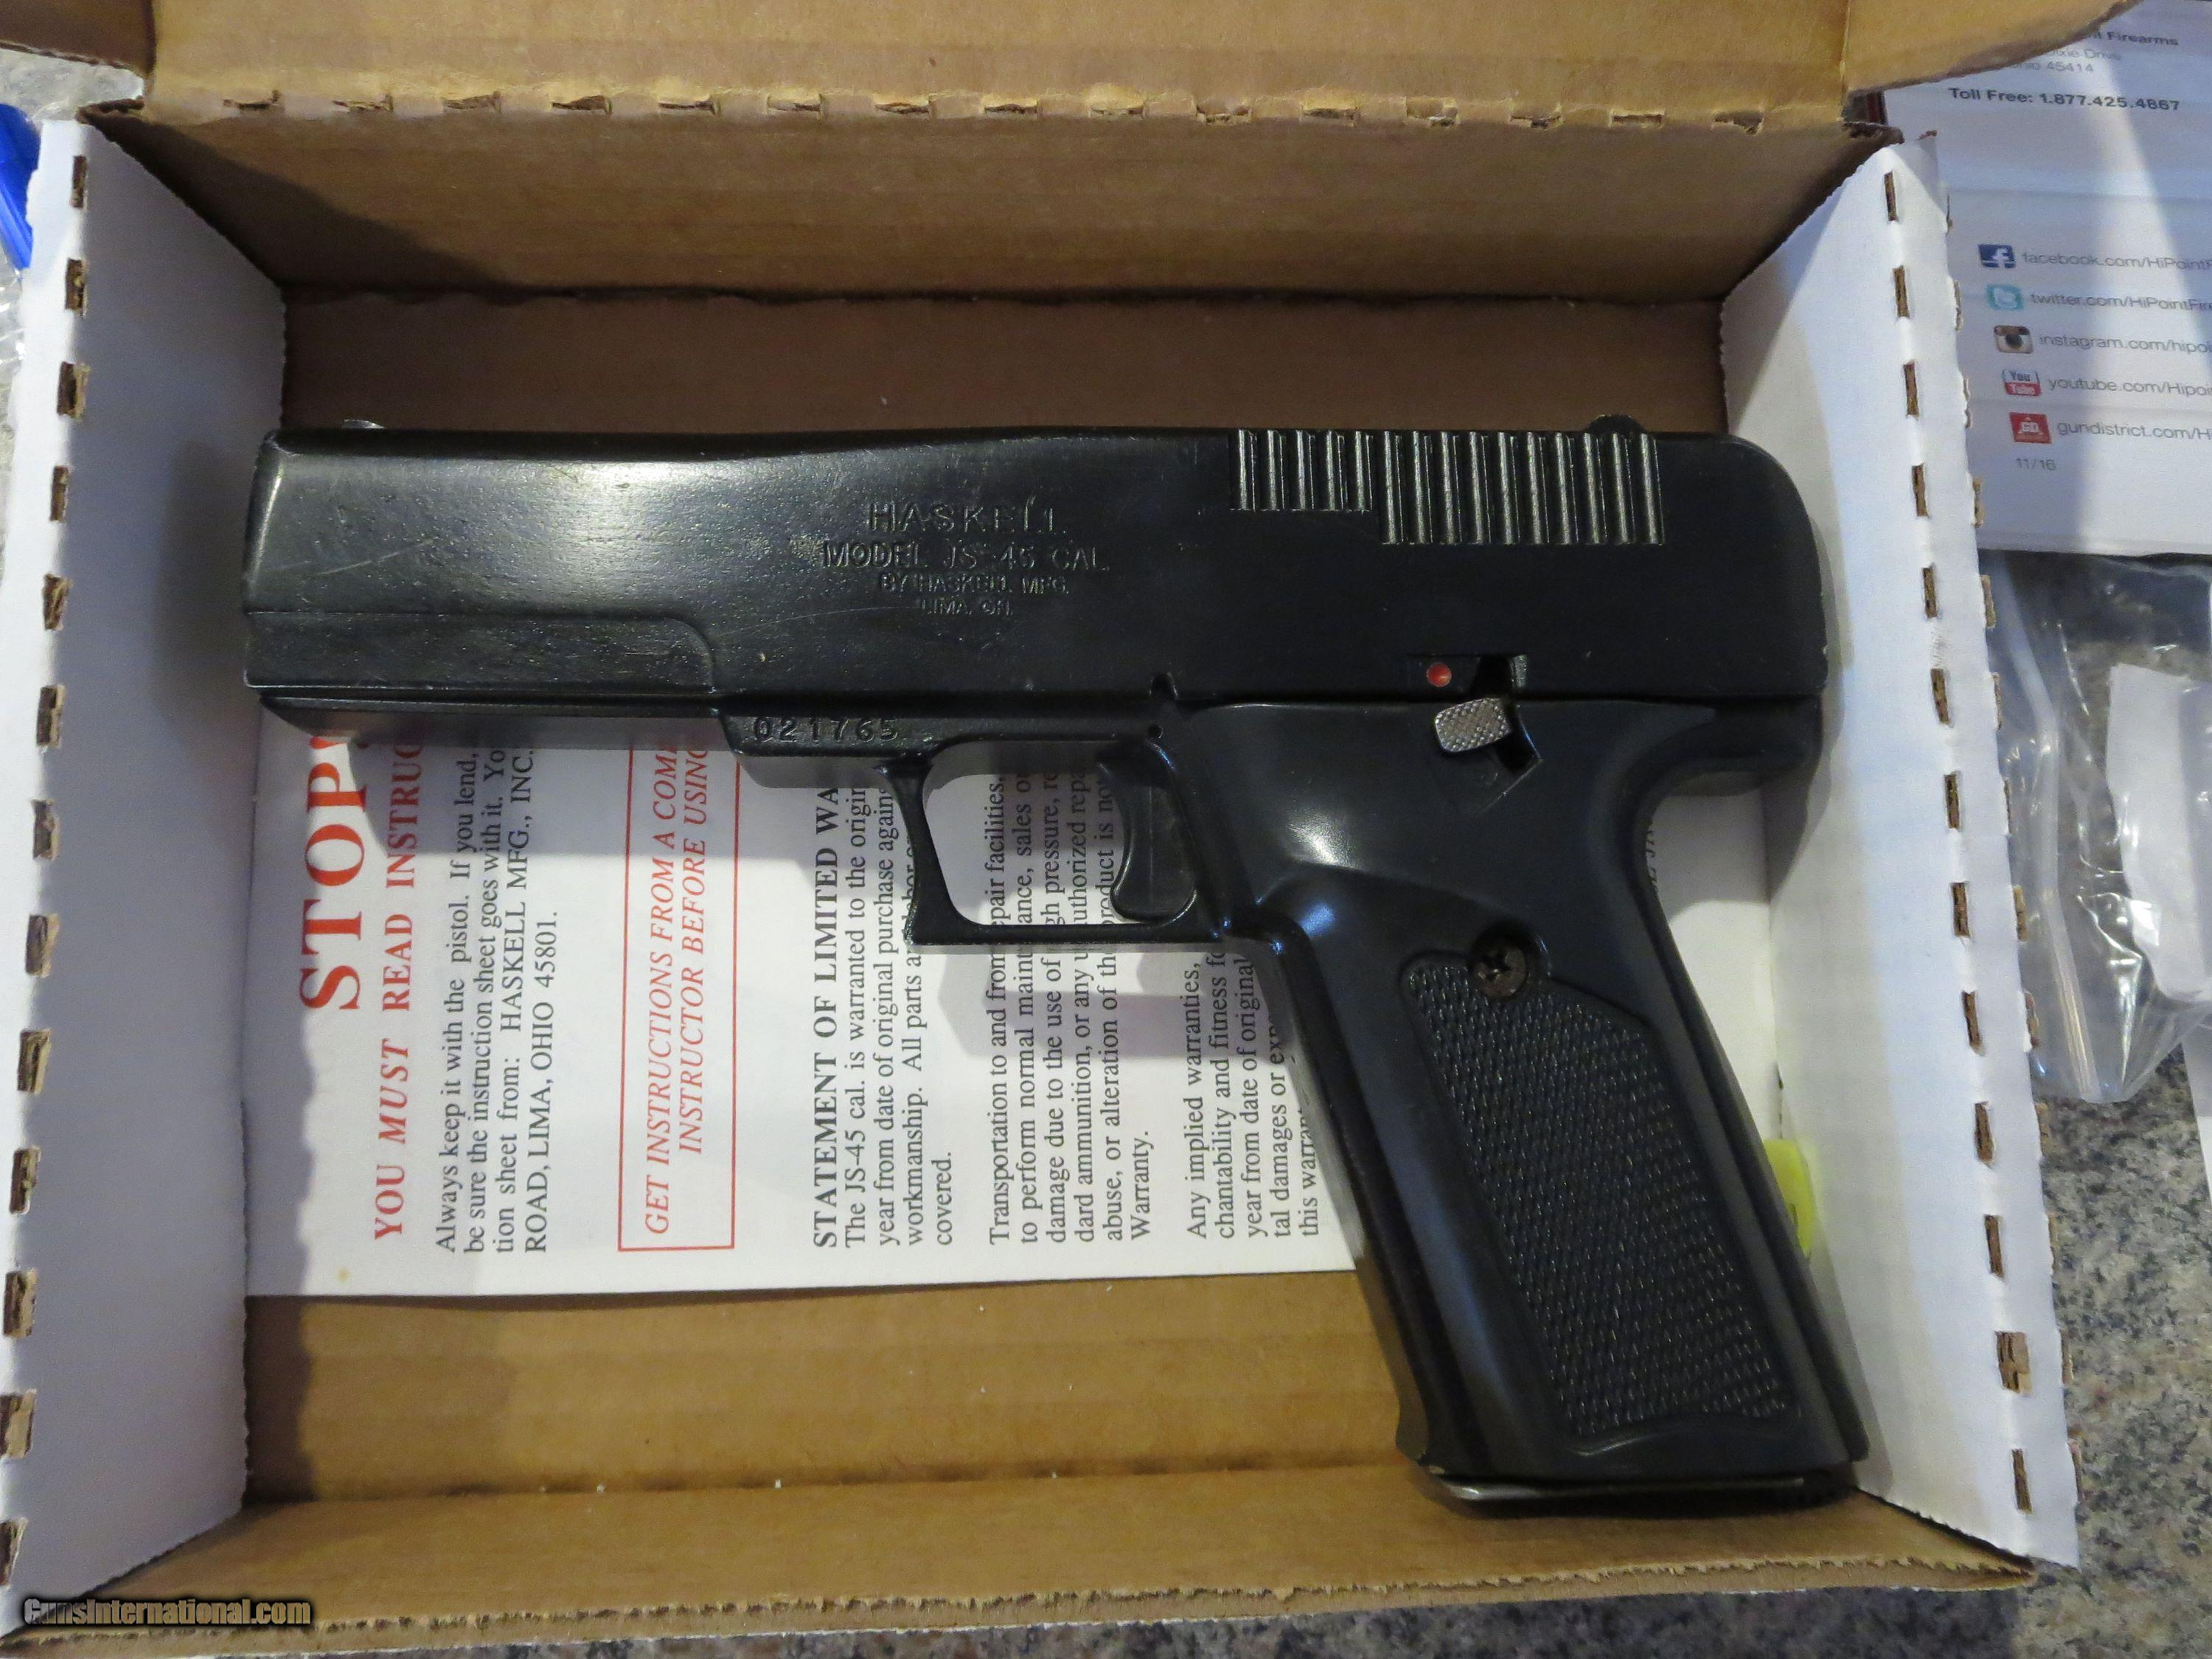 Haskell(Hi-Point) 45 ACP Semi-auto Pistol in Excellent Shape